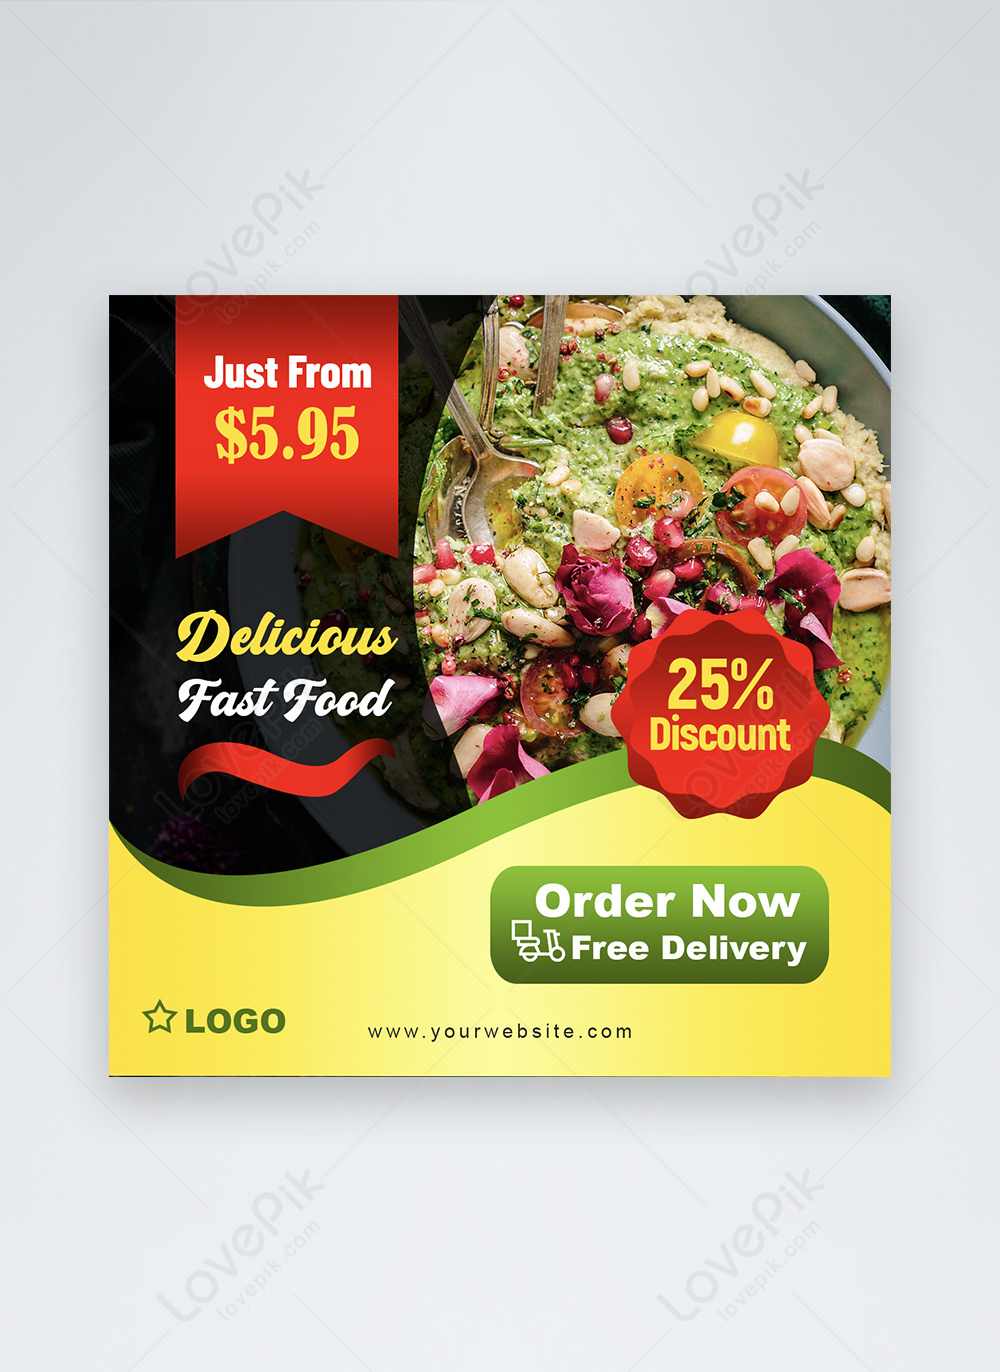 Healthy Food Restaurant Discount Social Media Post Template Image Picture Free Download 450014499 Lovepik Com